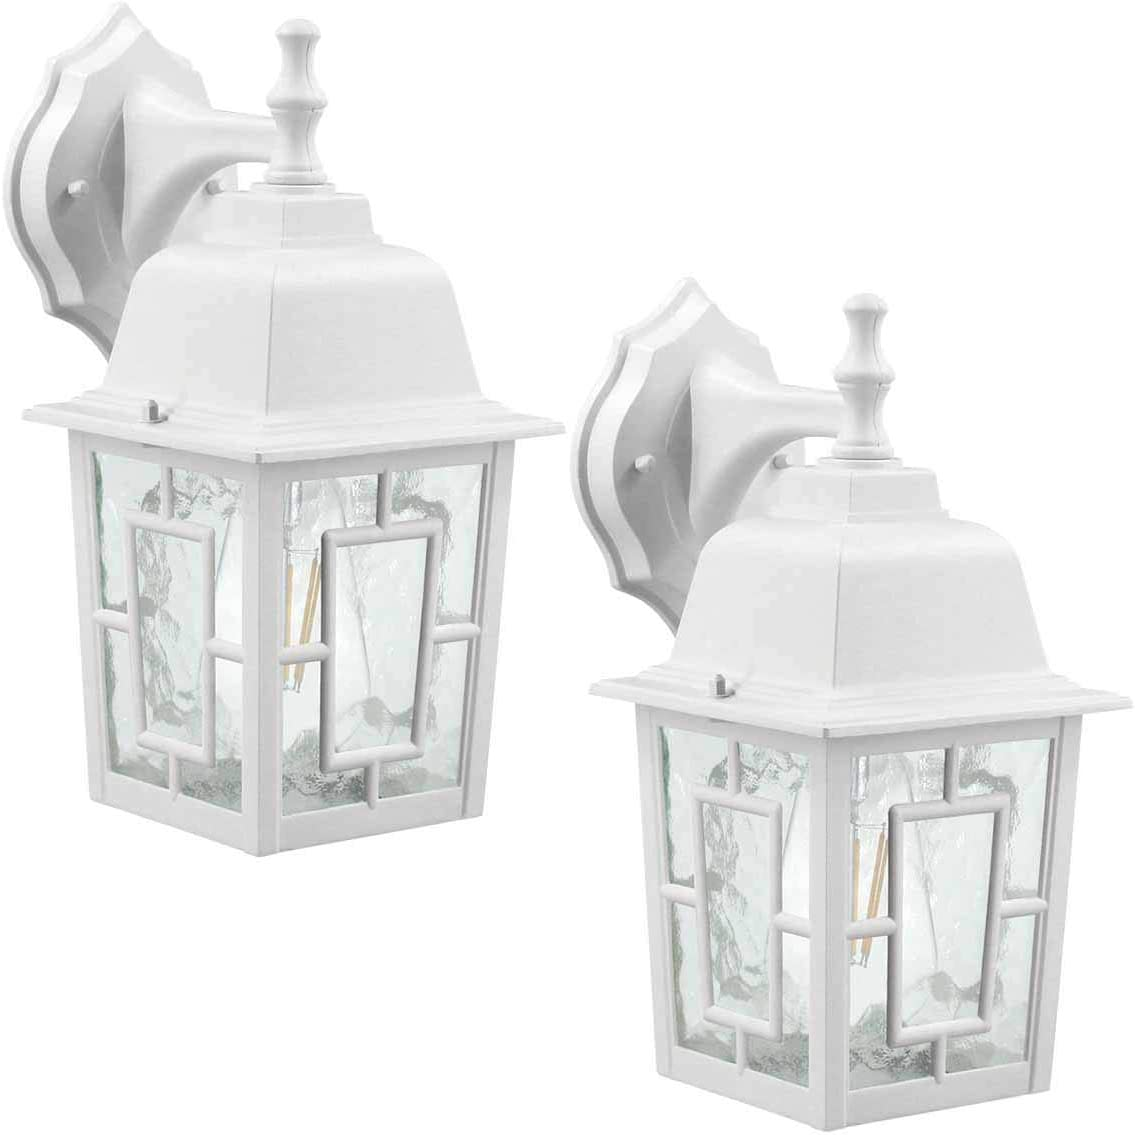 LED Wall Lantern, Wall Sconce as Porch Light, 100-150W Equivalent , 1100 Lumen, Aluminum Housing Plus Glass, Matte Finish, Outdoor Rated, ST64 8W ,White for 2Pack 9031